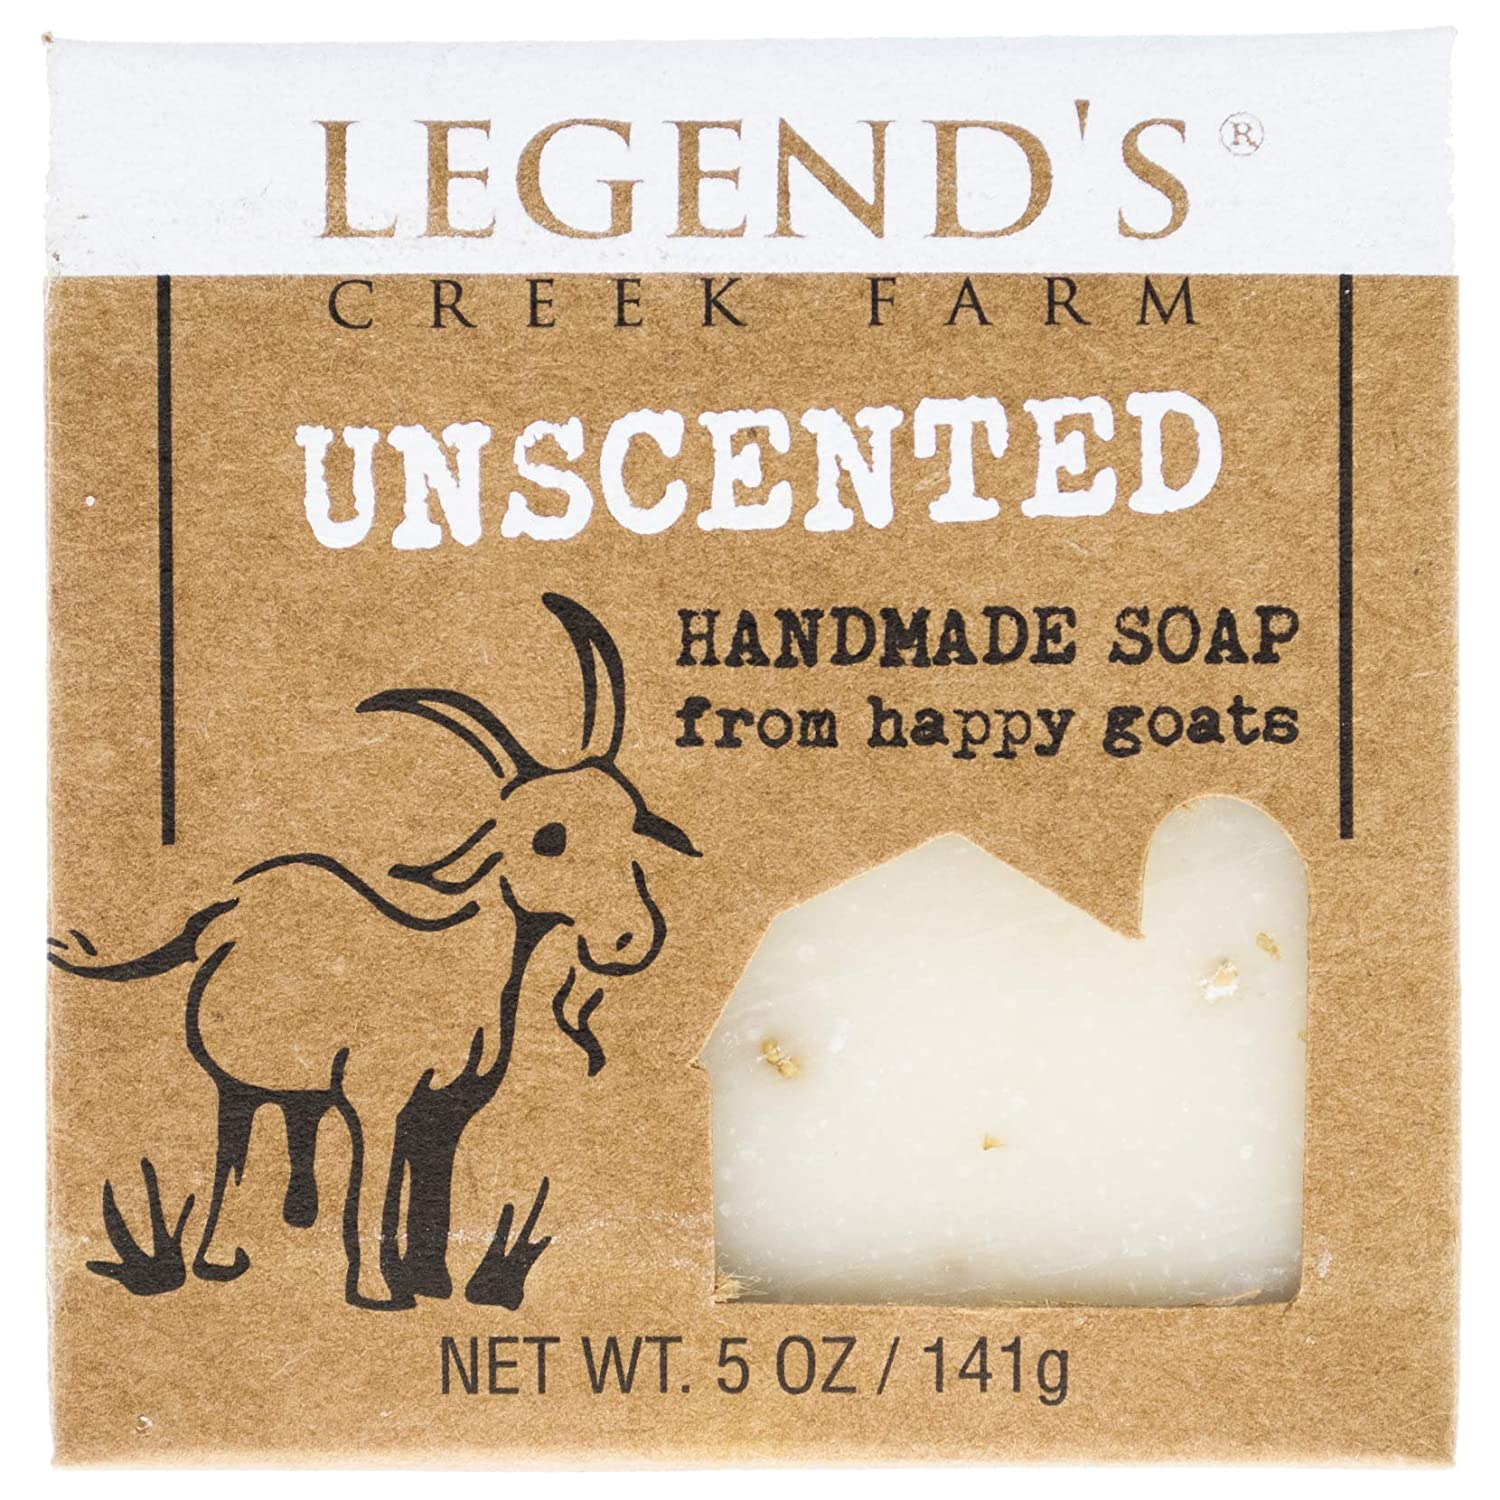 Unscented Goat Milk Soap - 5 Oz Bar - Great For Sensitive Skin - Certified Cruelty Free